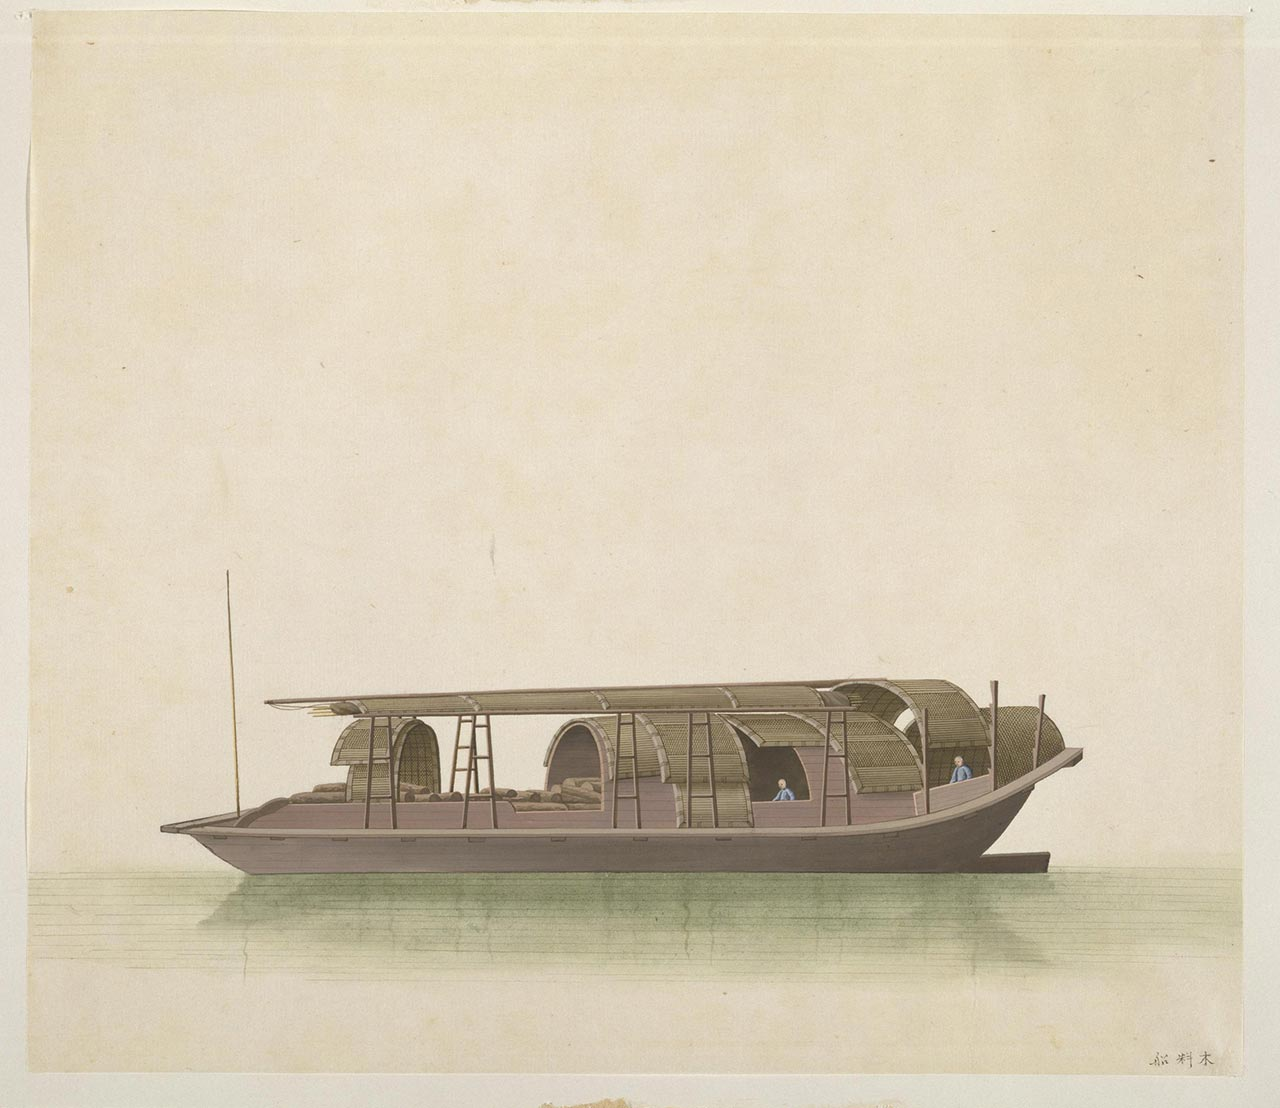 A boat transporting timber.